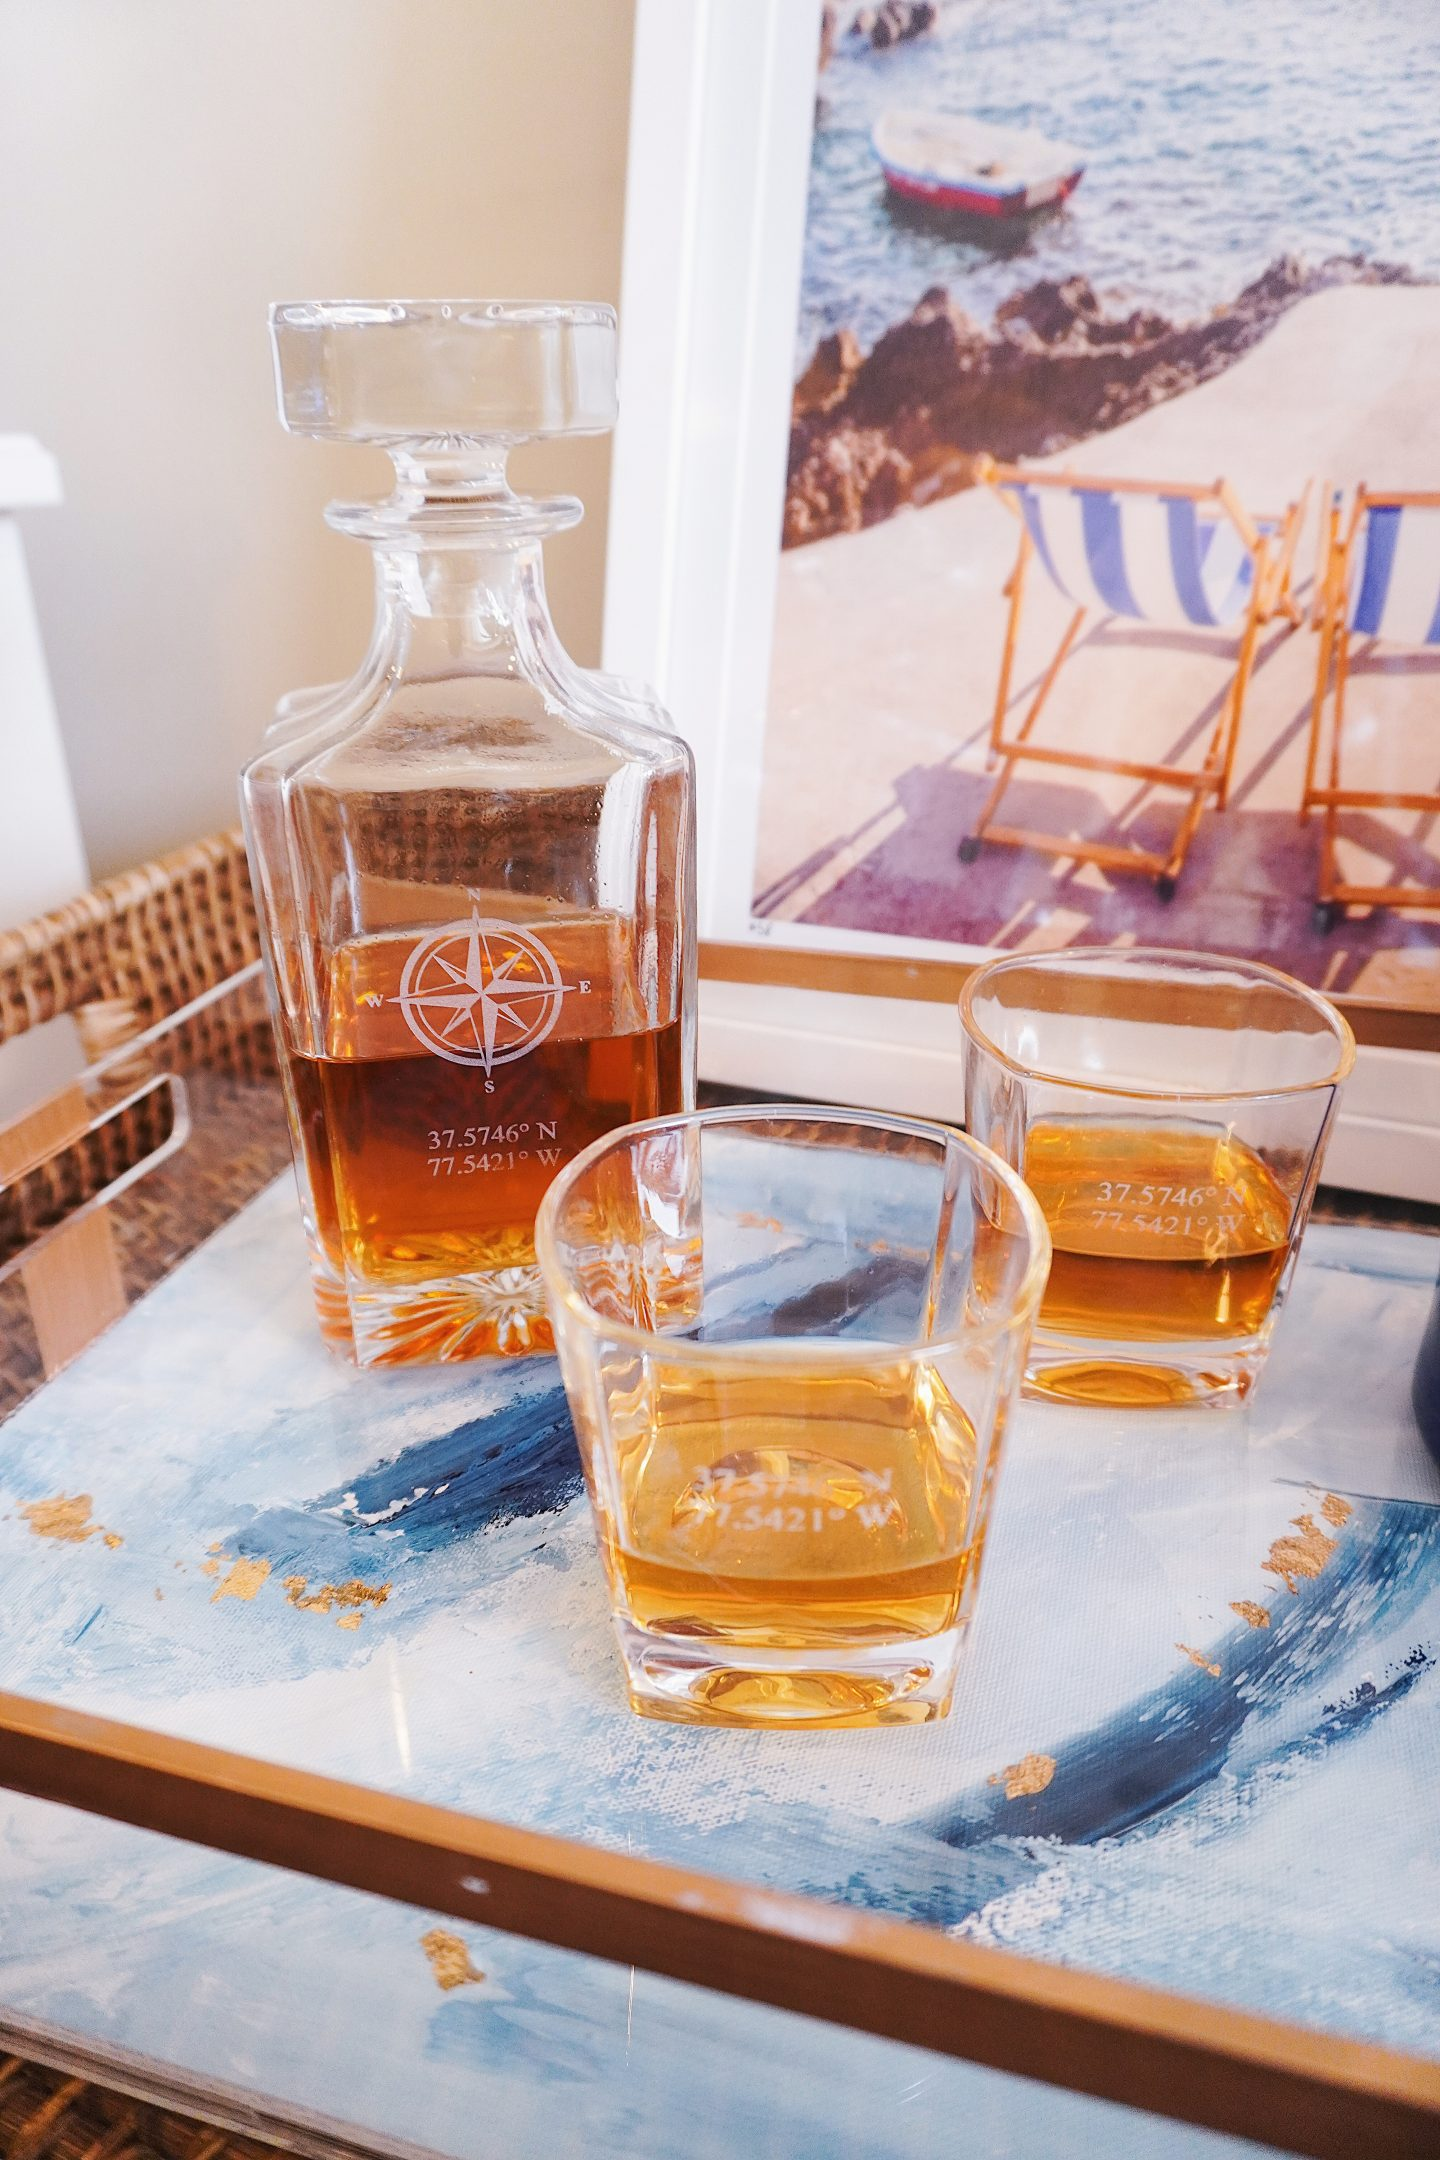 Grain and Oak personalized whiskey decanter set for men's Valentine's Day gift